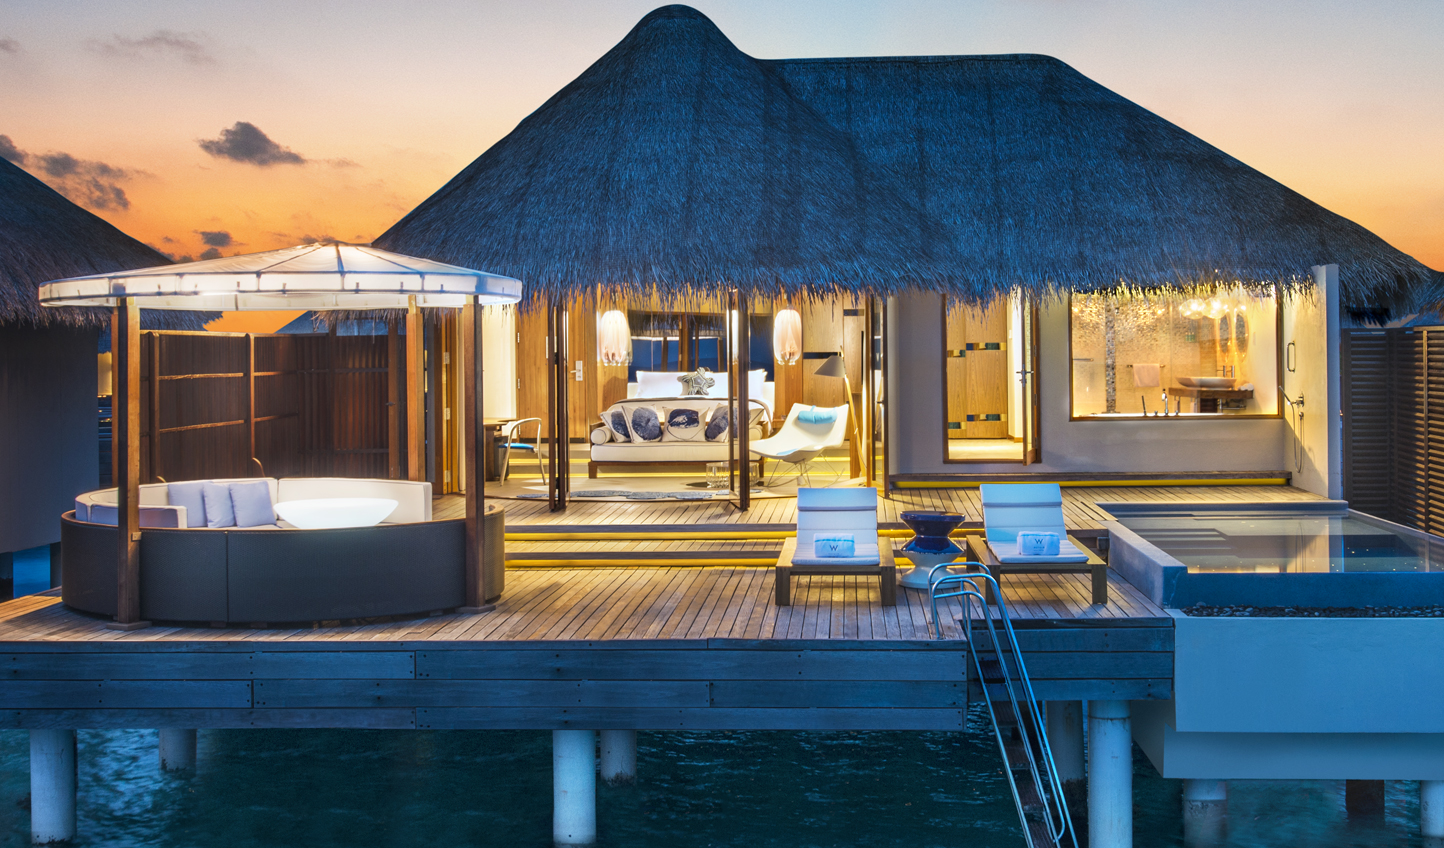 Hole up in your Fabulous Overwater Oasis